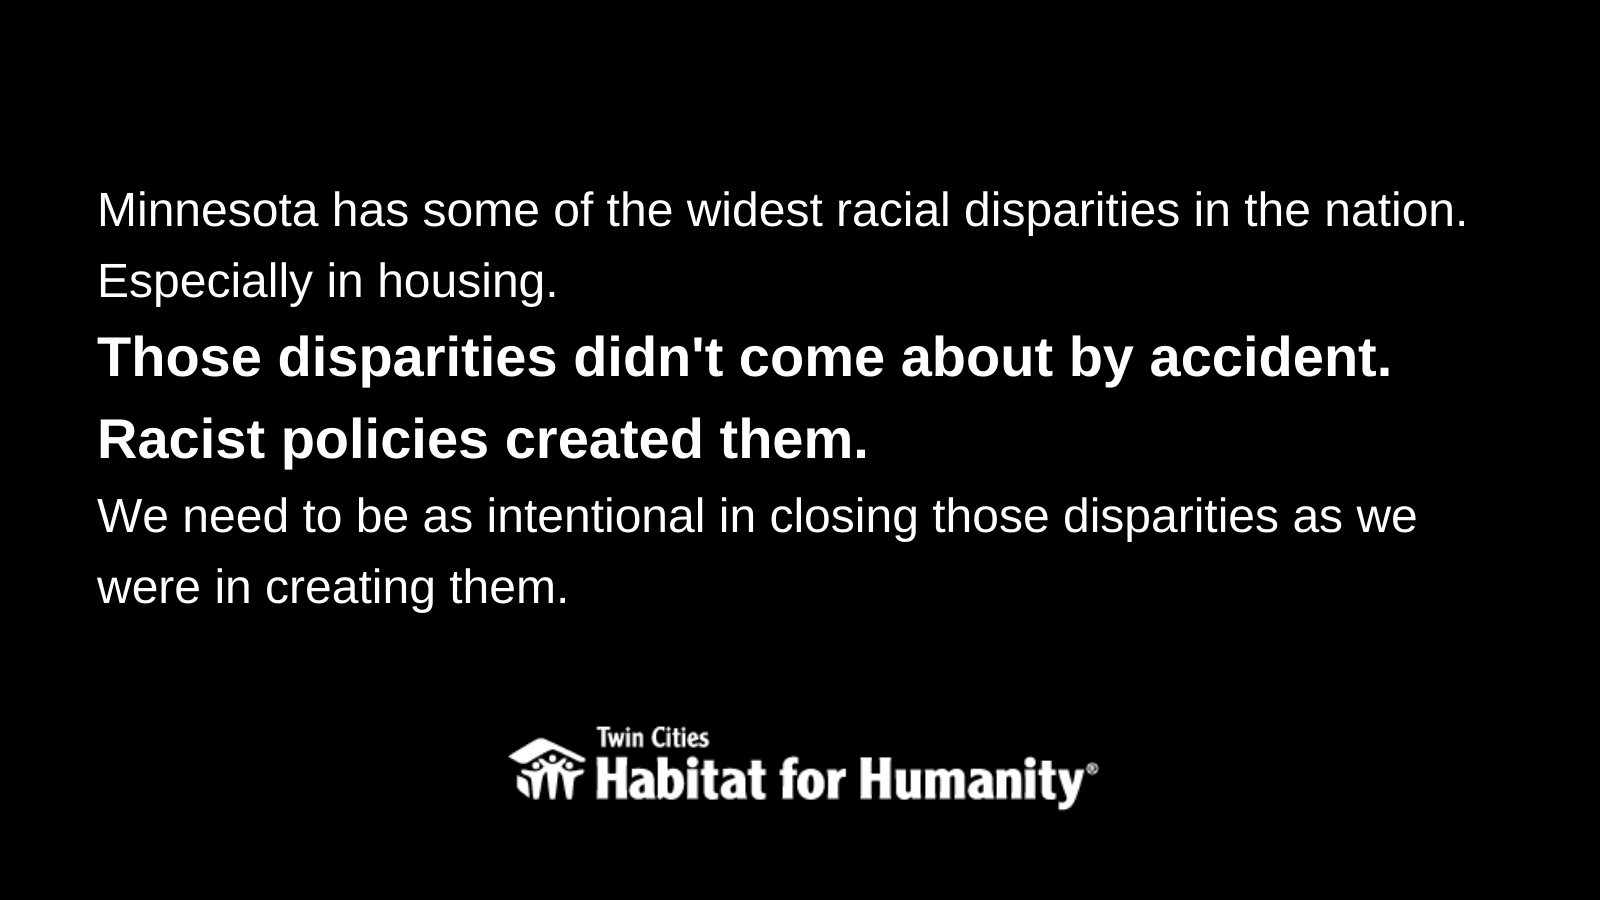 Racial disparities in housing didn't happen by accident.